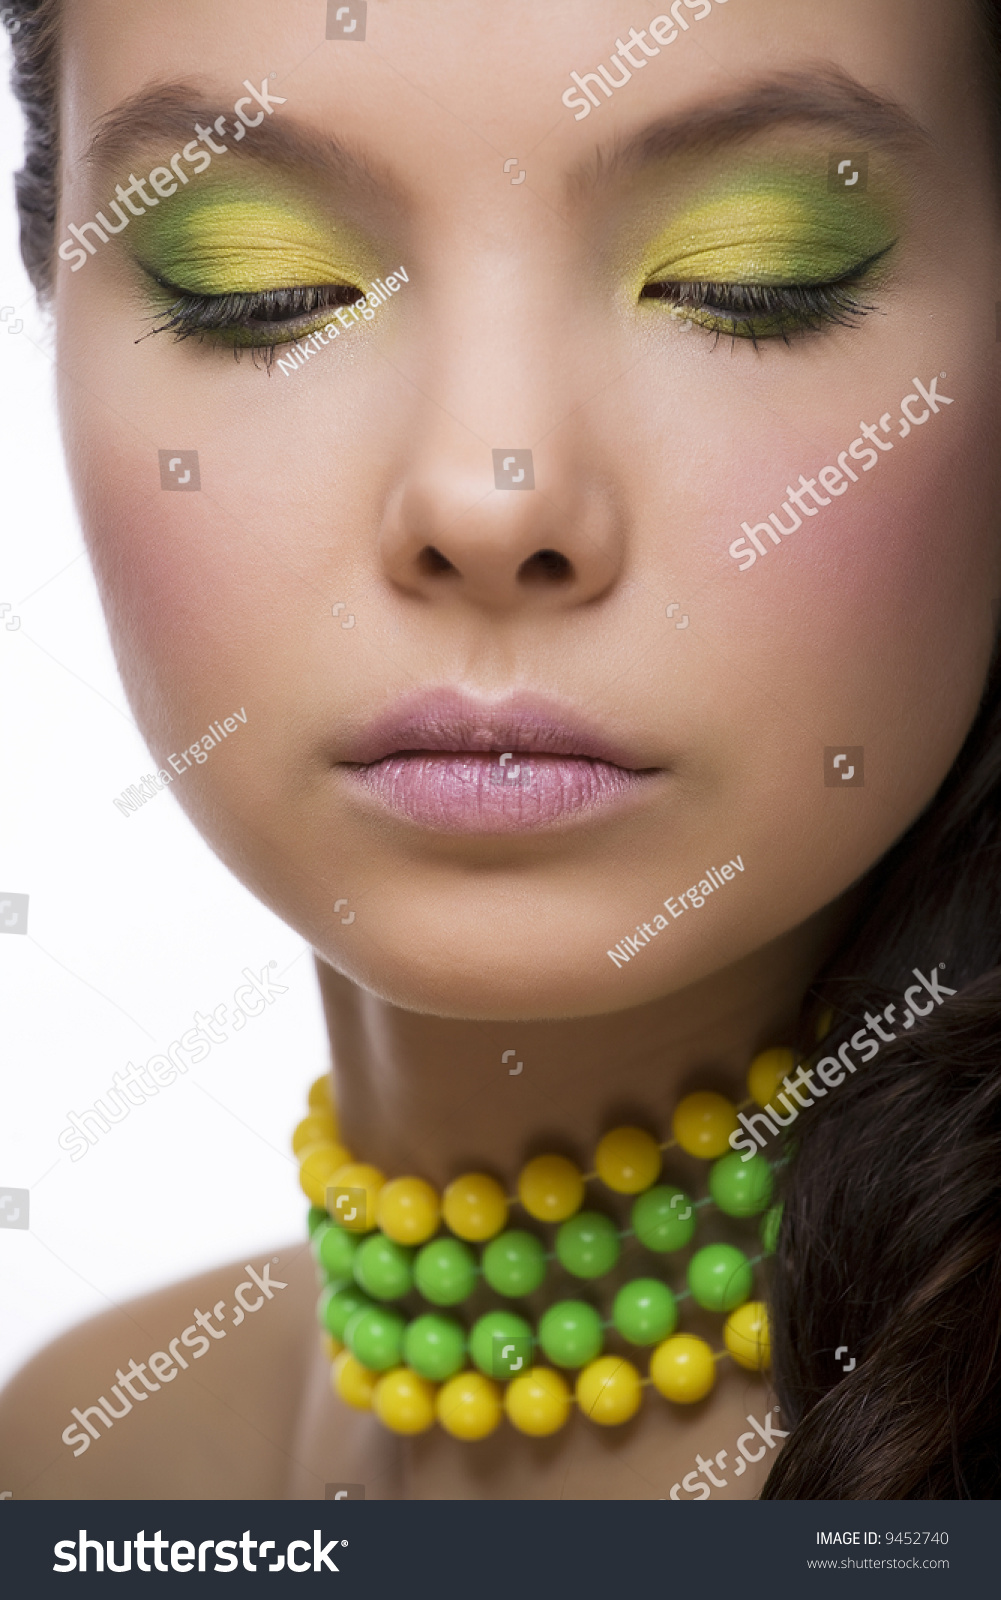 green and yellow make up with beads stock photo 9452740 shutterstock. Black Bedroom Furniture Sets. Home Design Ideas